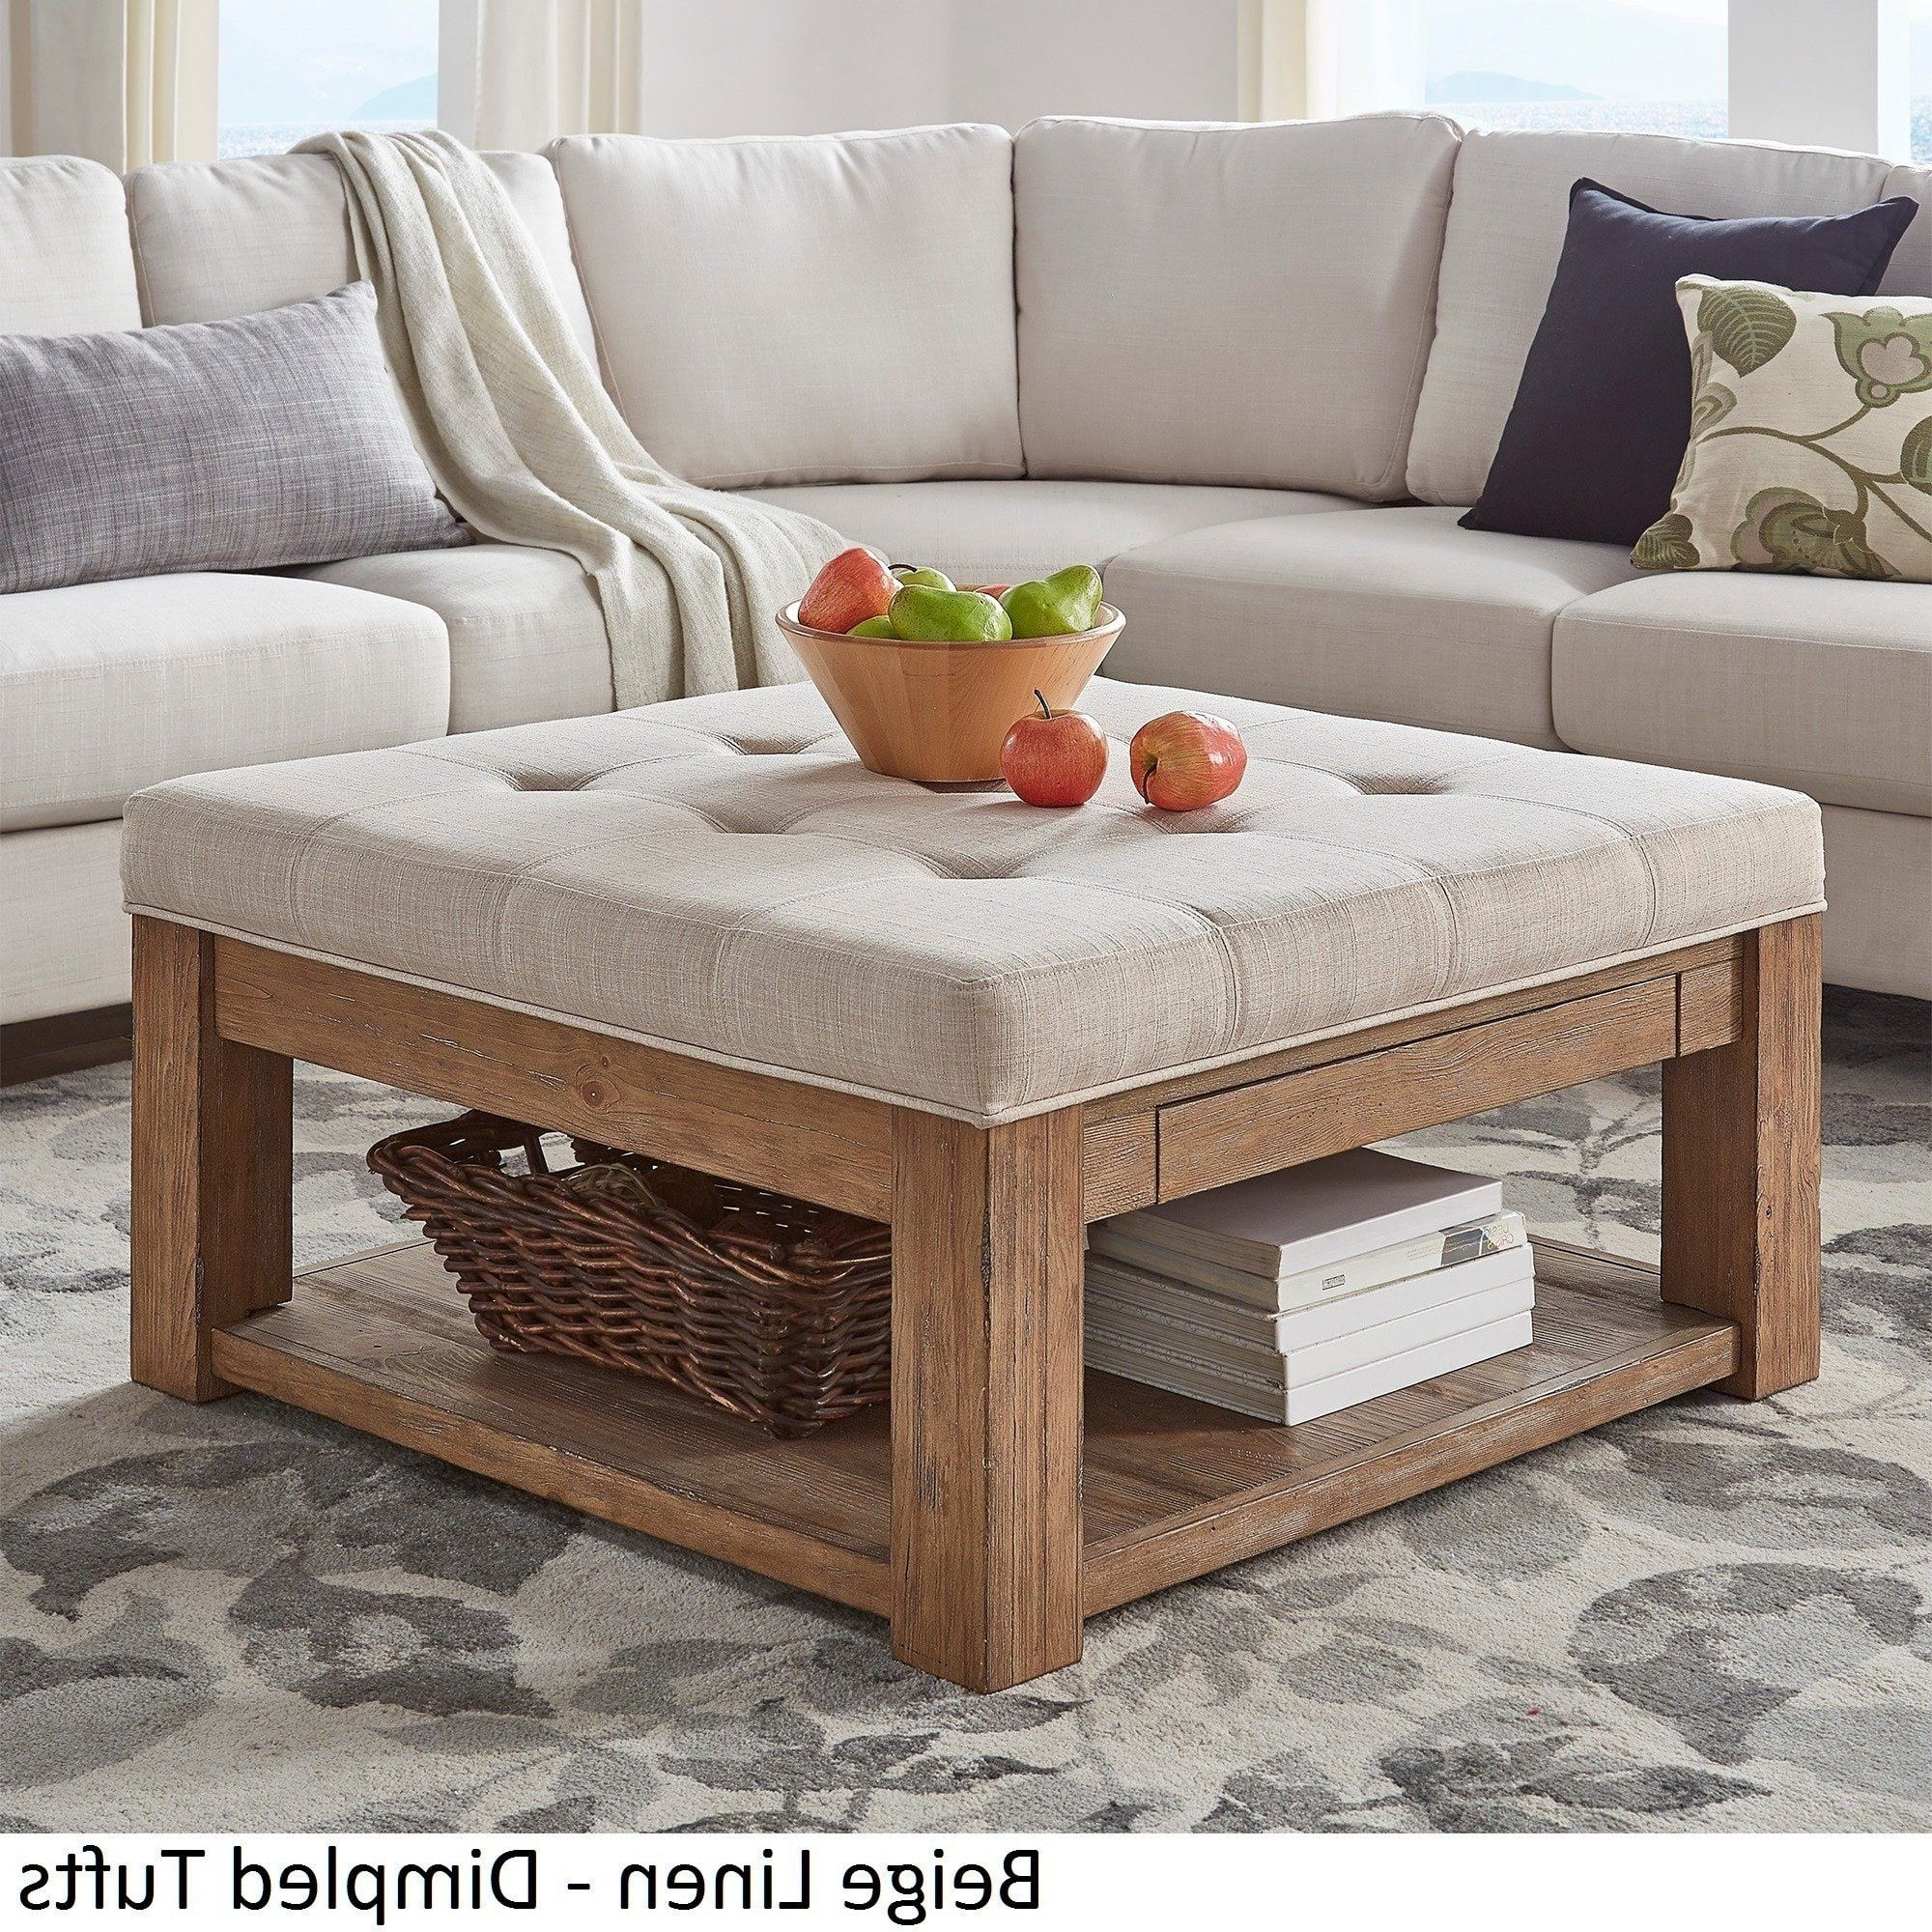 Most Up To Date Lennon Pine Planked Storage Ottoman Coffee Tables Throughout Lennon Pine Square Storage Ottoman Coffee Tableinspire Q (View 8 of 20)